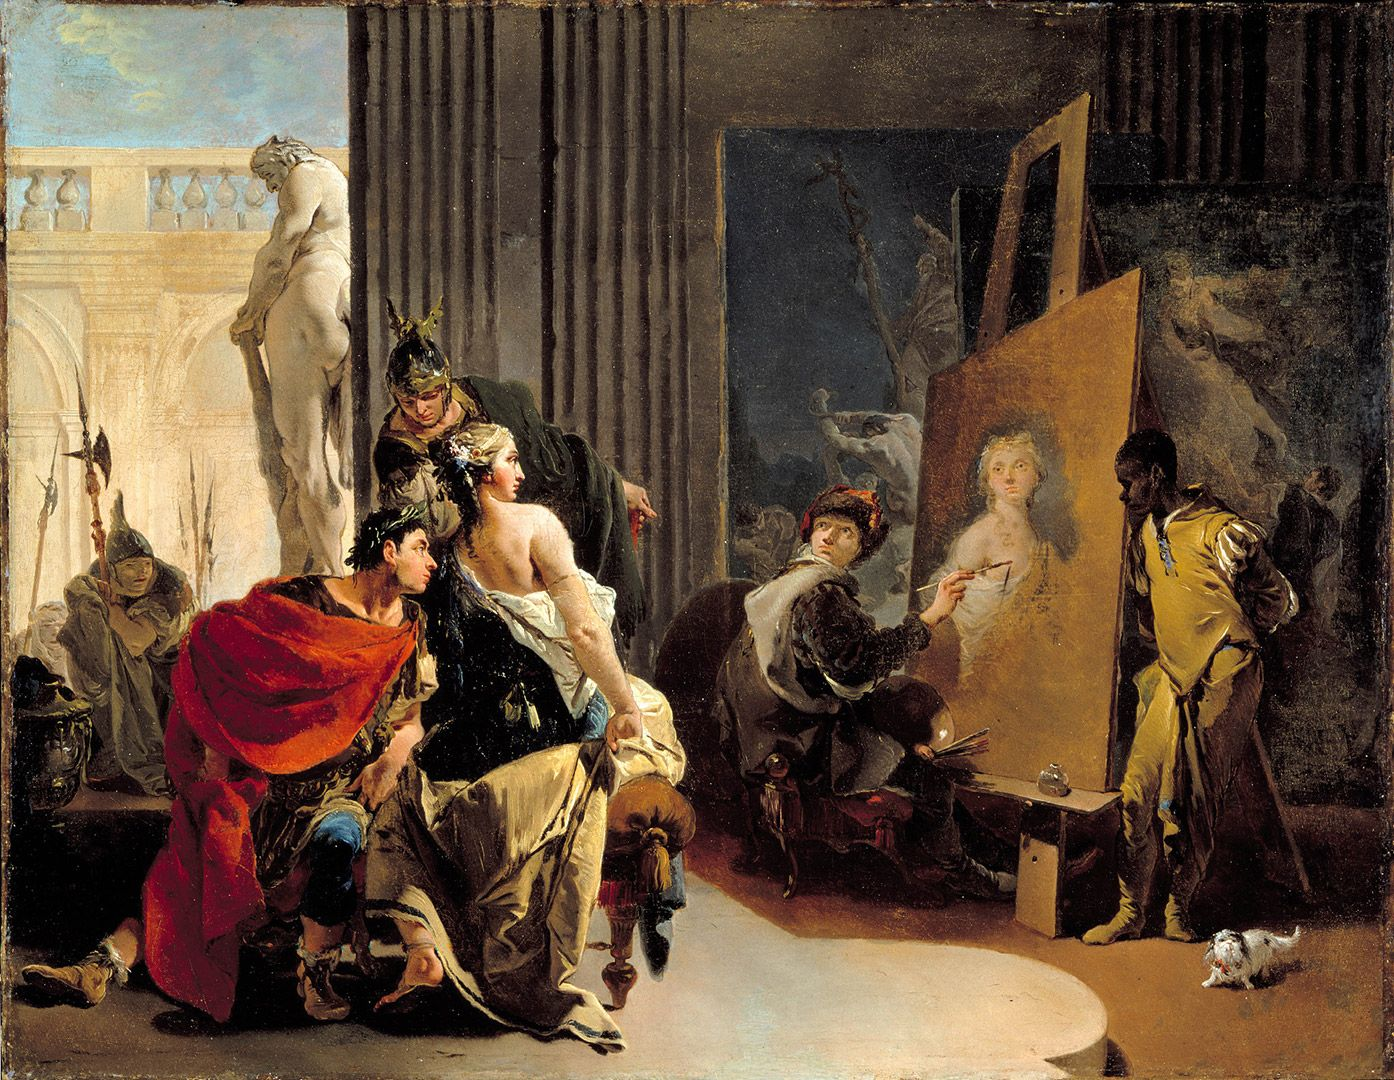 Giovanni Battista Tiepolo, Apelles Painting the Portrait of Campaspe, about 1726, oil on canvas, 57.4 x 73.7 cm. Adaline Van Horne Bequest.